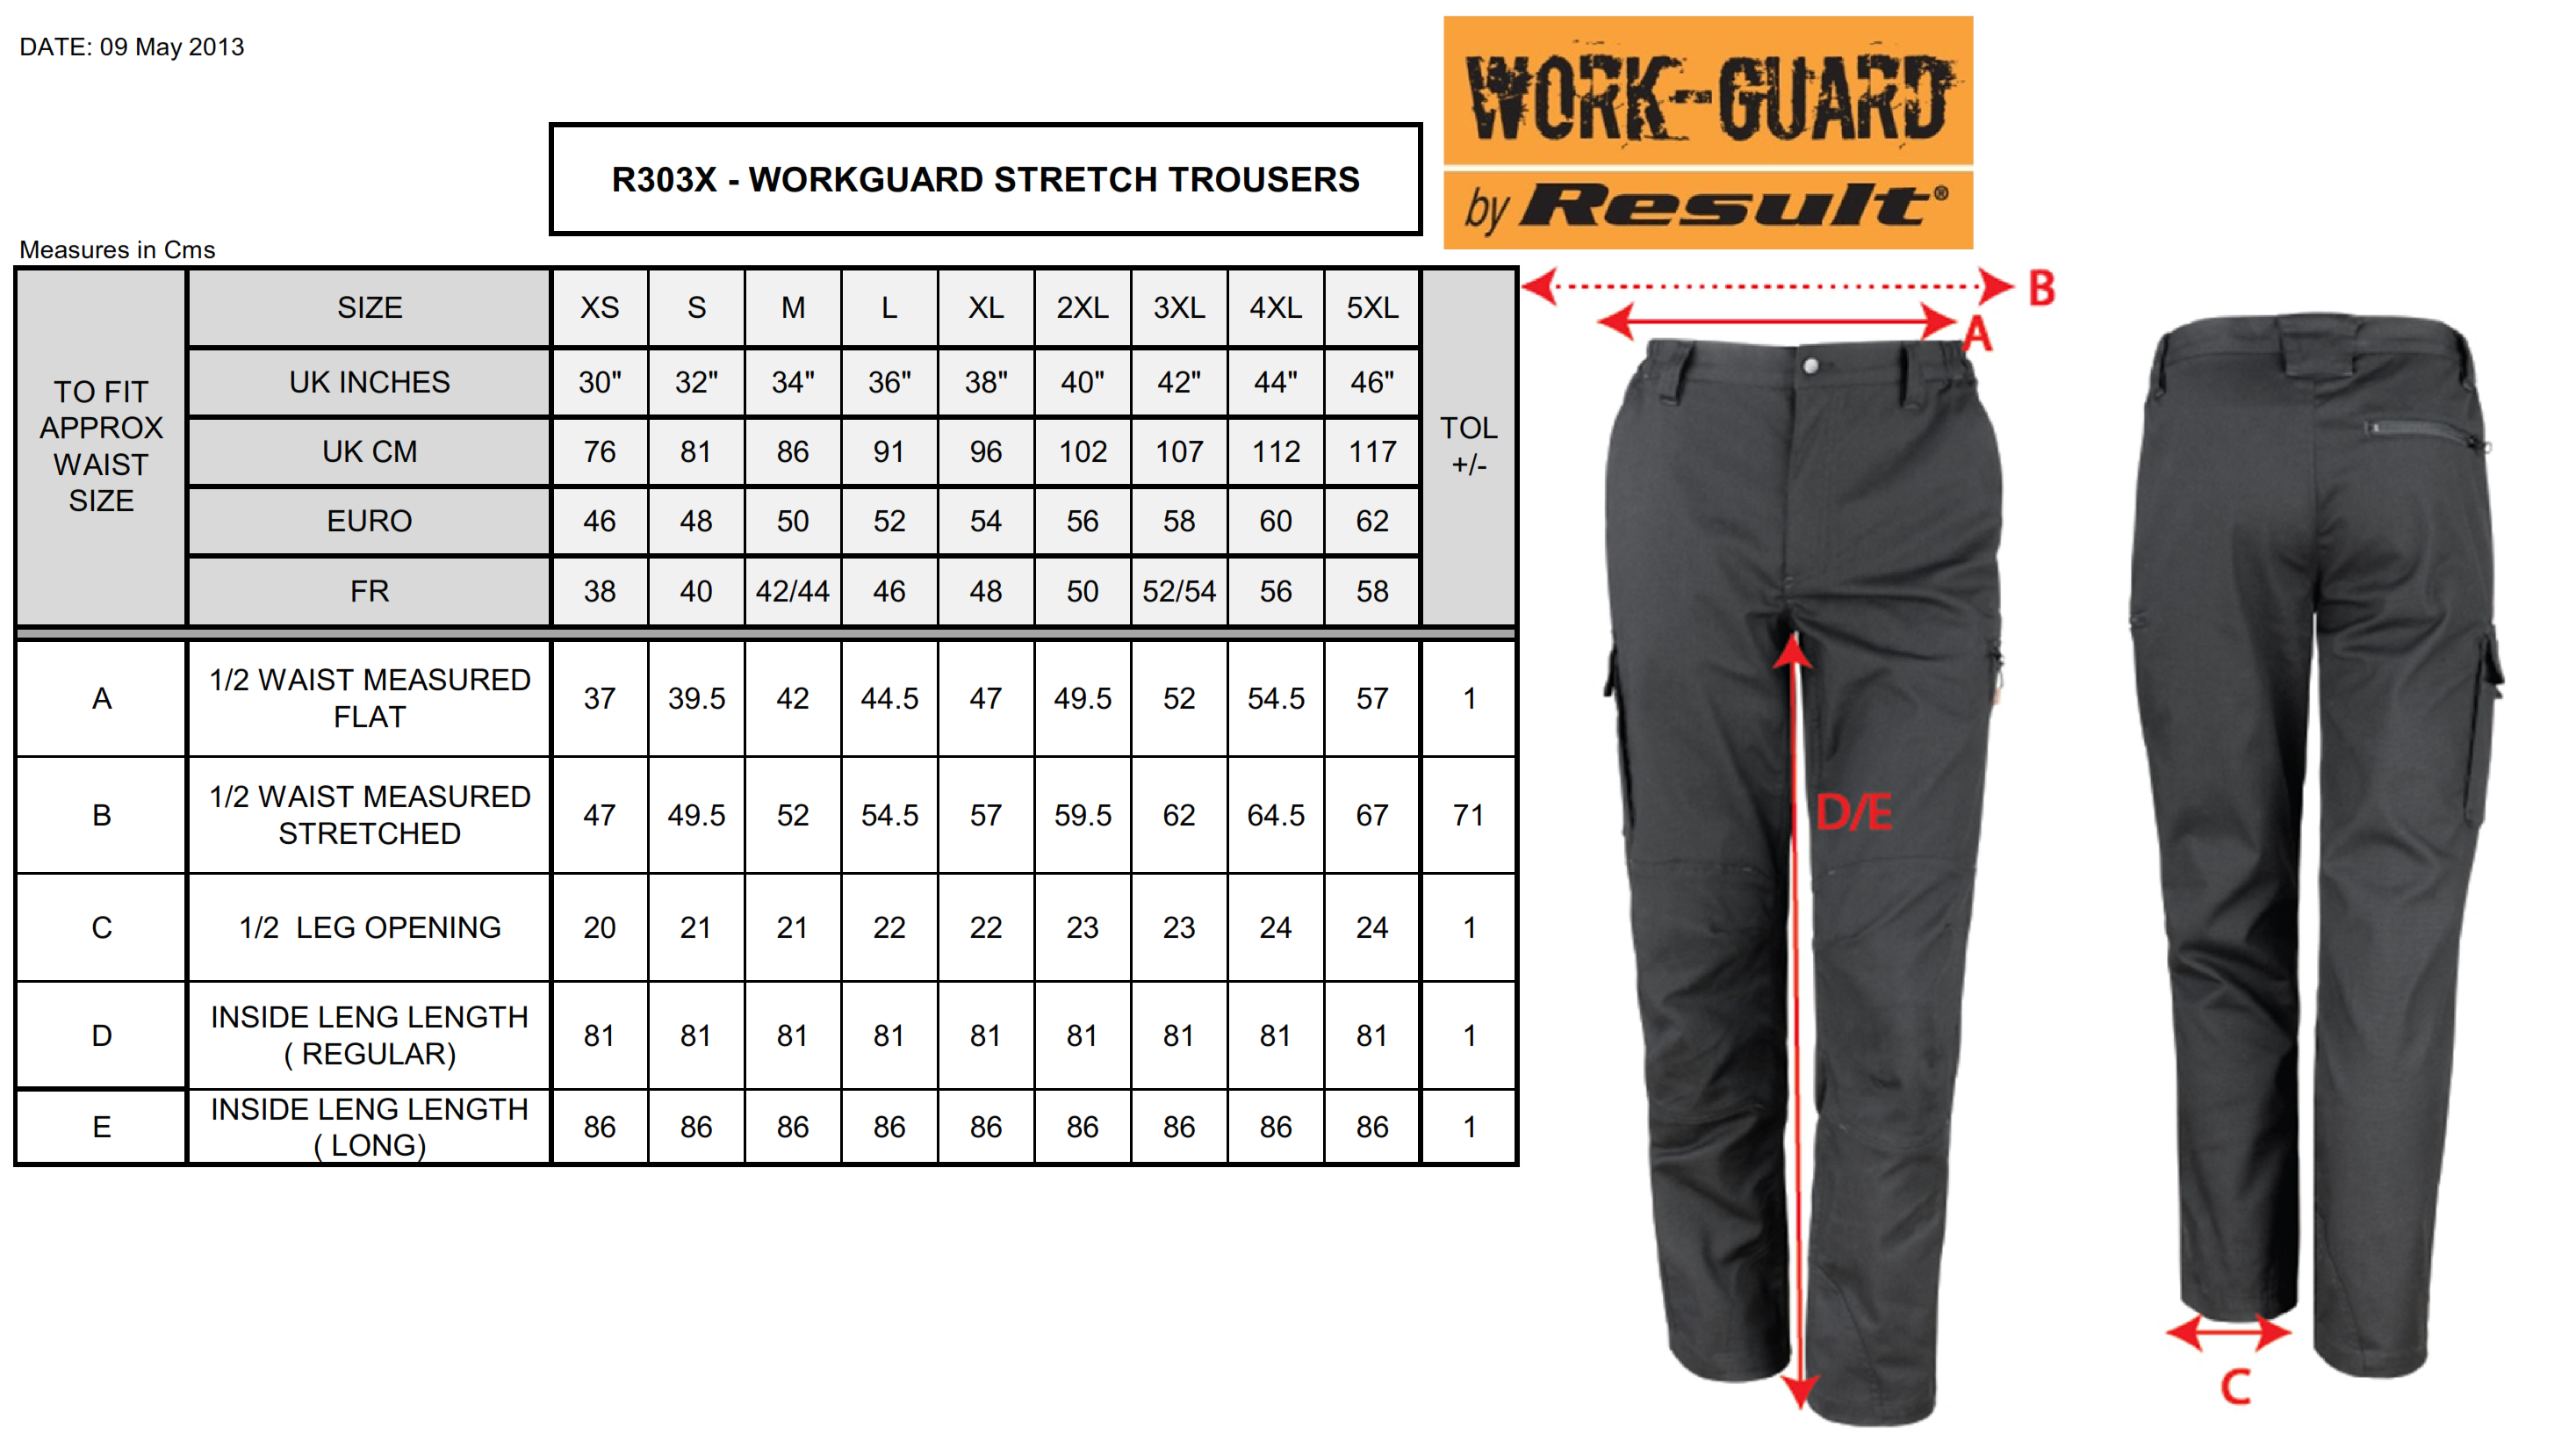 Result: Work-Guard Stretch Trousers Long R303X (L)